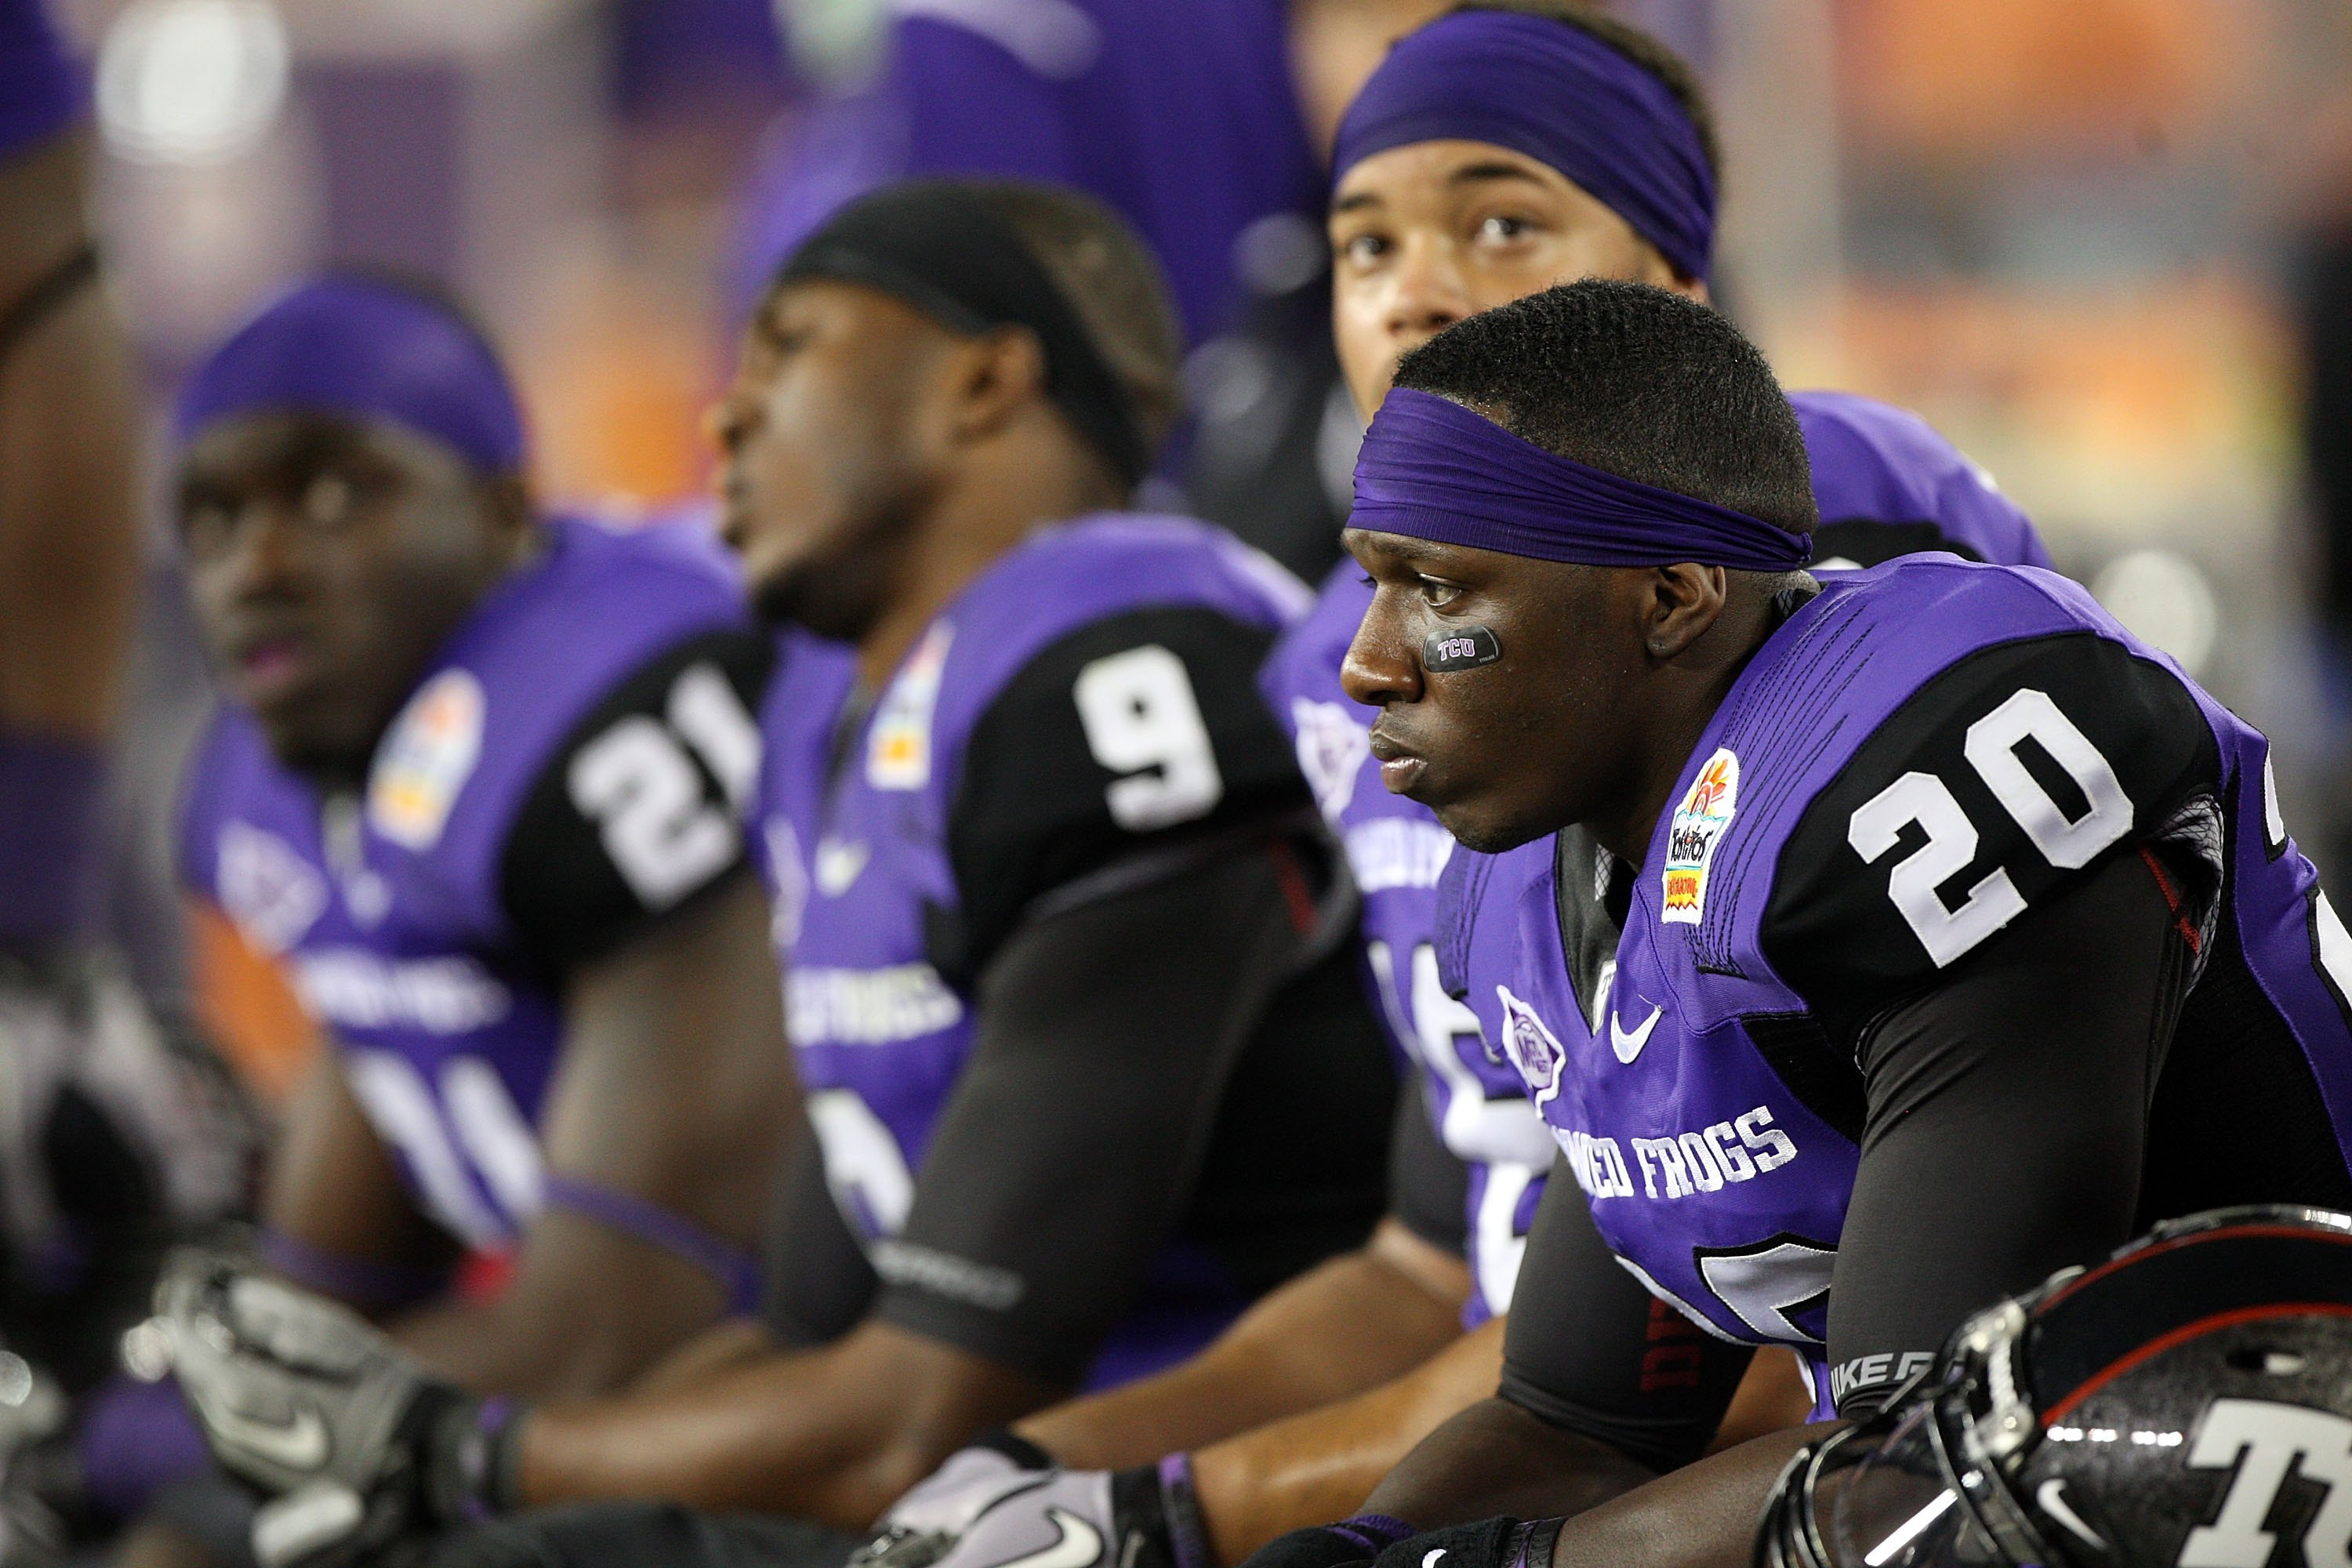 GLENDALE, AZ - JANUARY 04:  Nick Sanders #20 of the TCU Horned Frogs sits on the bench with his teammates against the Boise State Broncos during the Tostitos Fiesta Bowl at the Universtity of Phoenix Stadium on January 4, 2010 in Glendale, Arizona.  (Phot